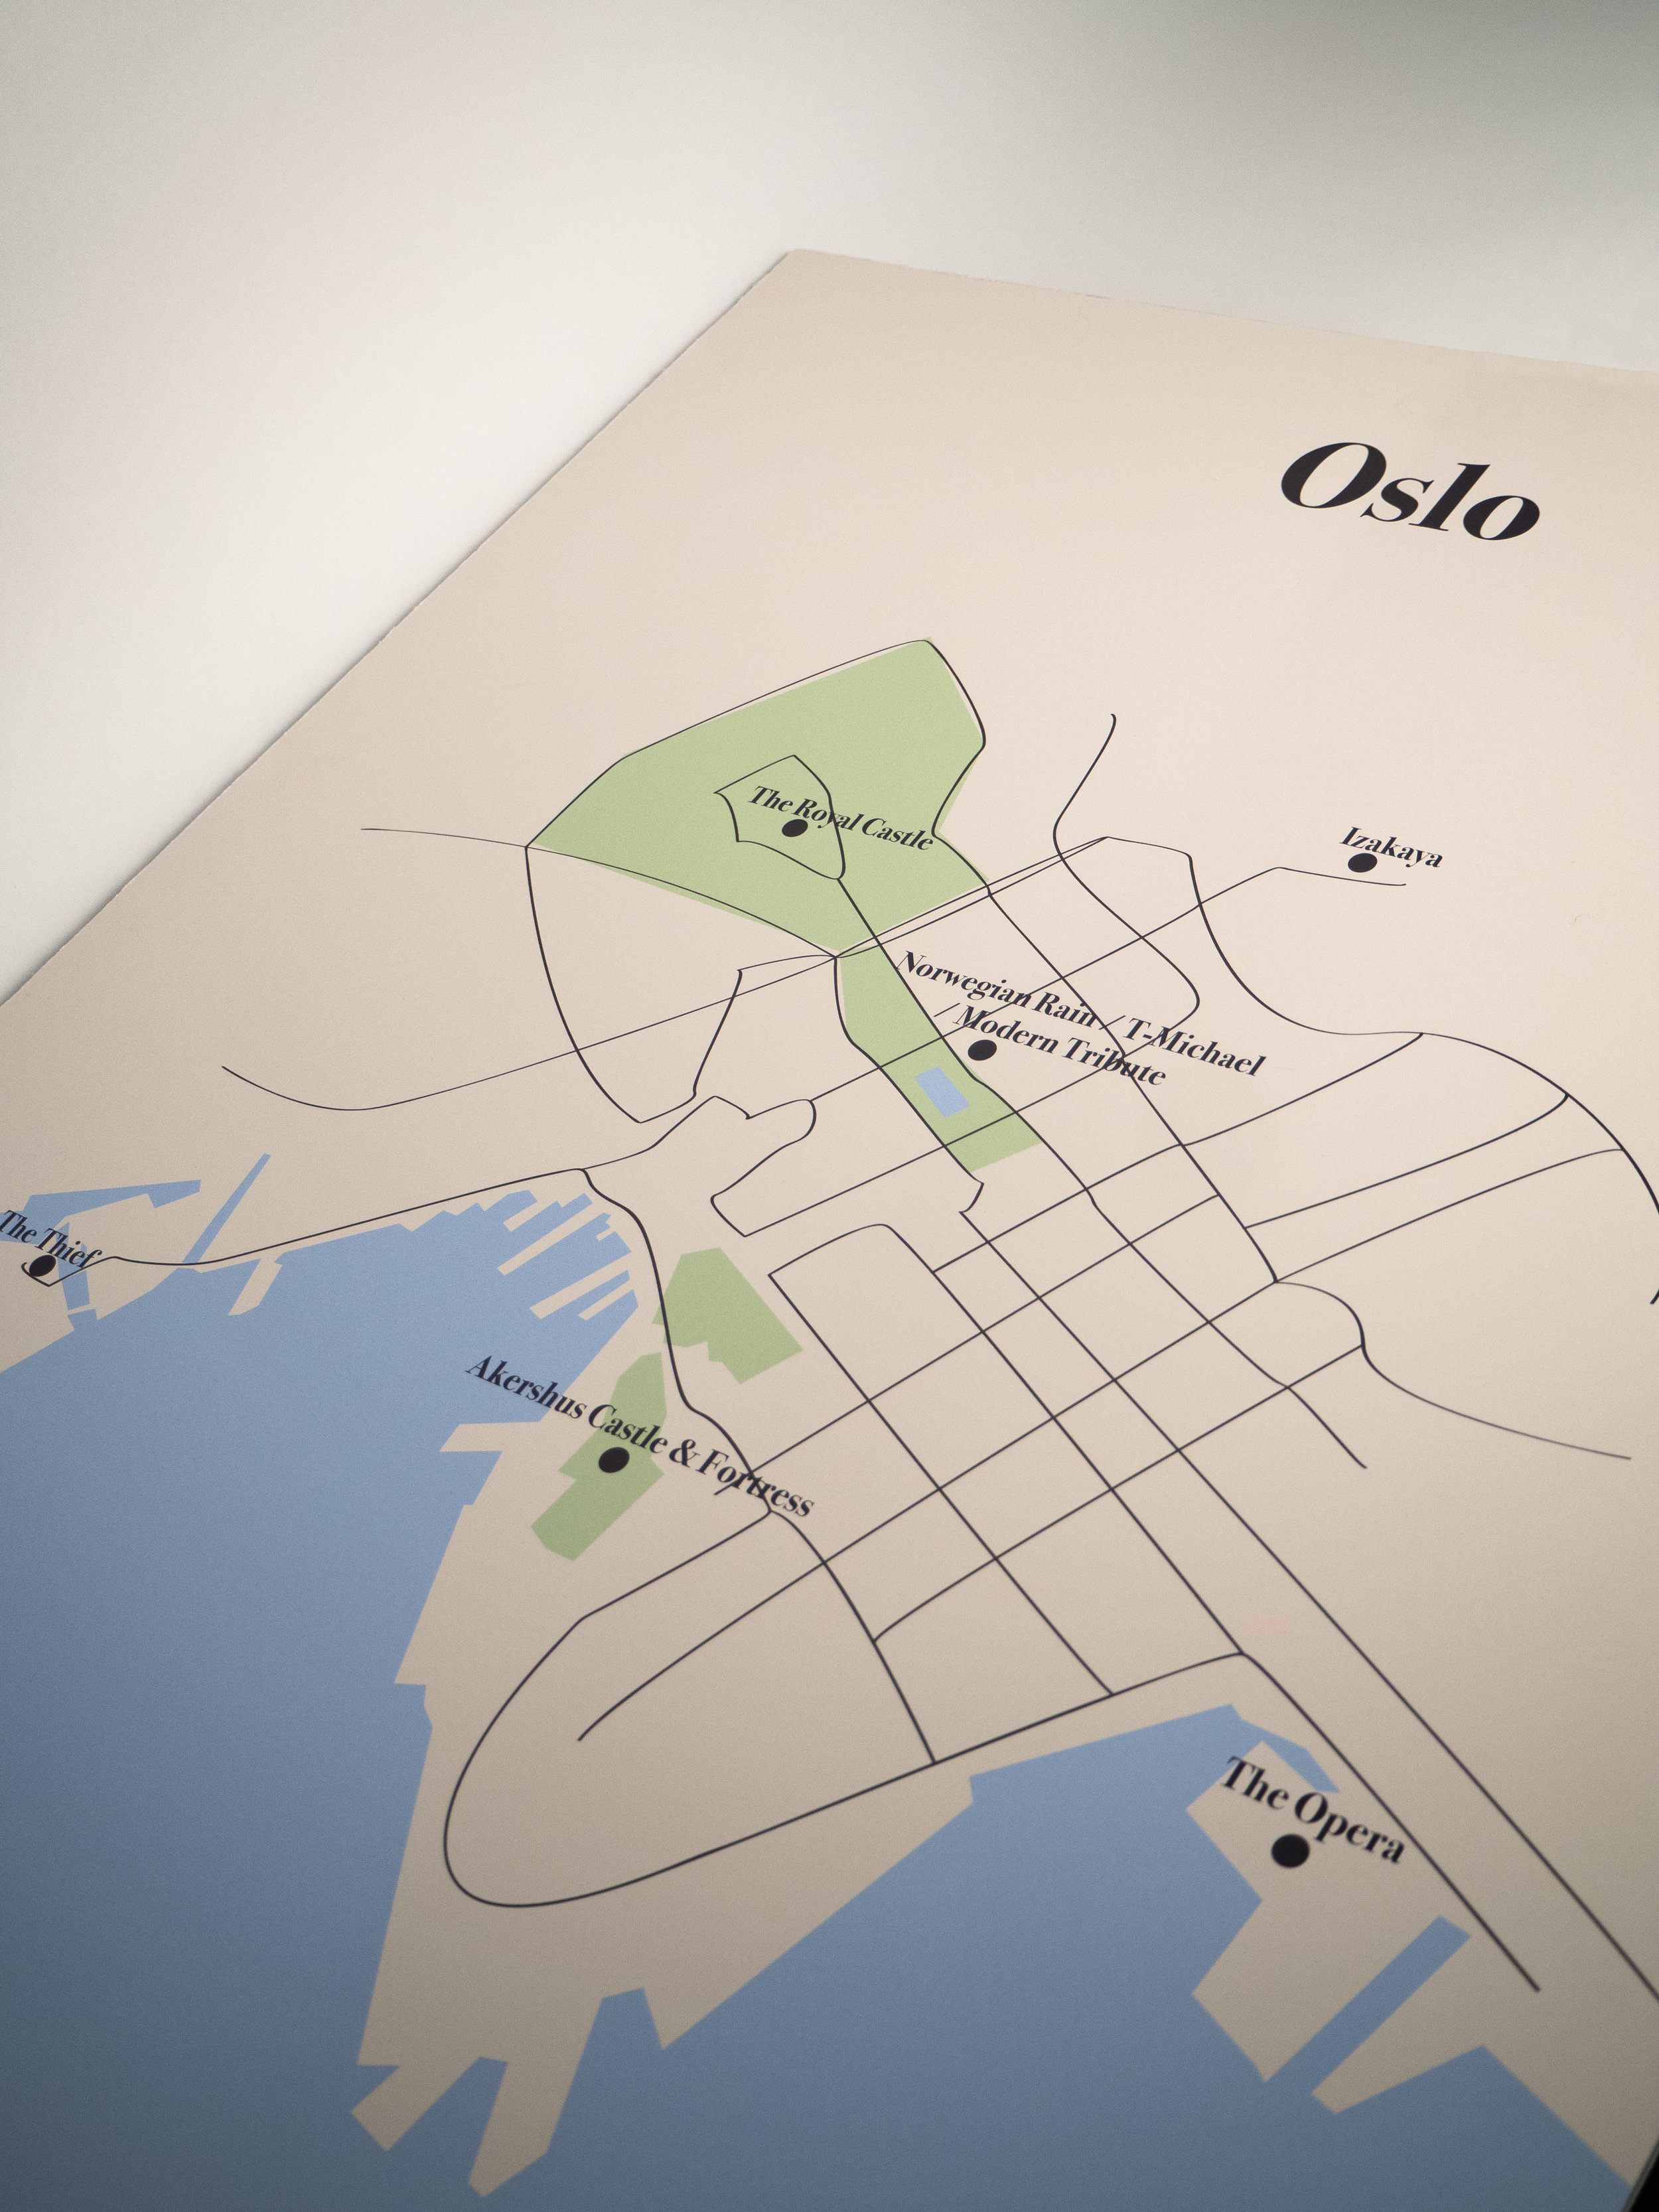 Map of Oslo for popup with The Thief Hotel